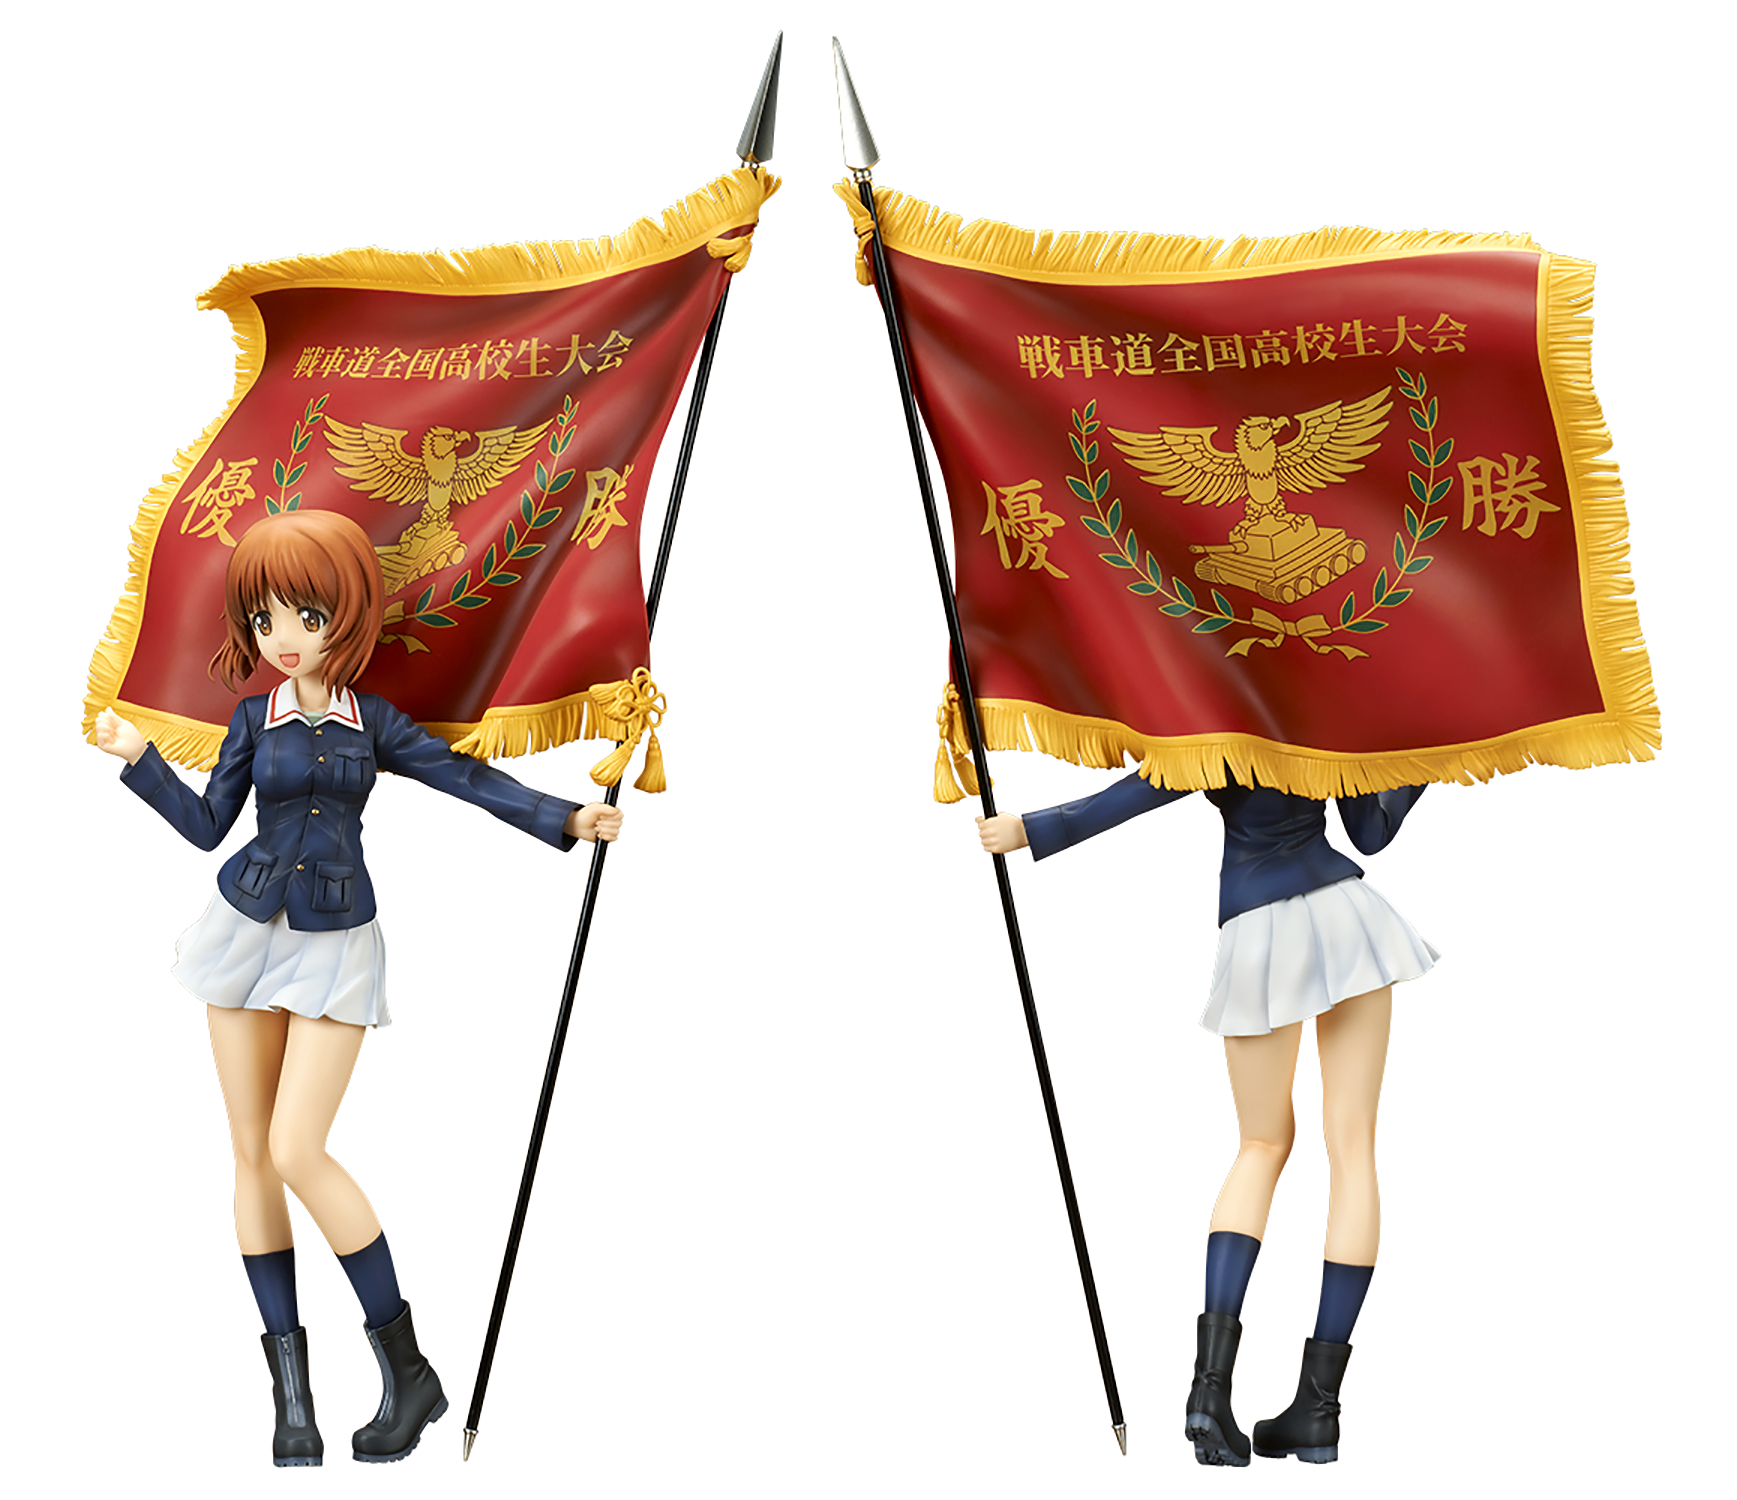 GIRLS UND PANZER MOVIE MIHO NISHIZUMI 1/7 PVC FIG W/ FLAG